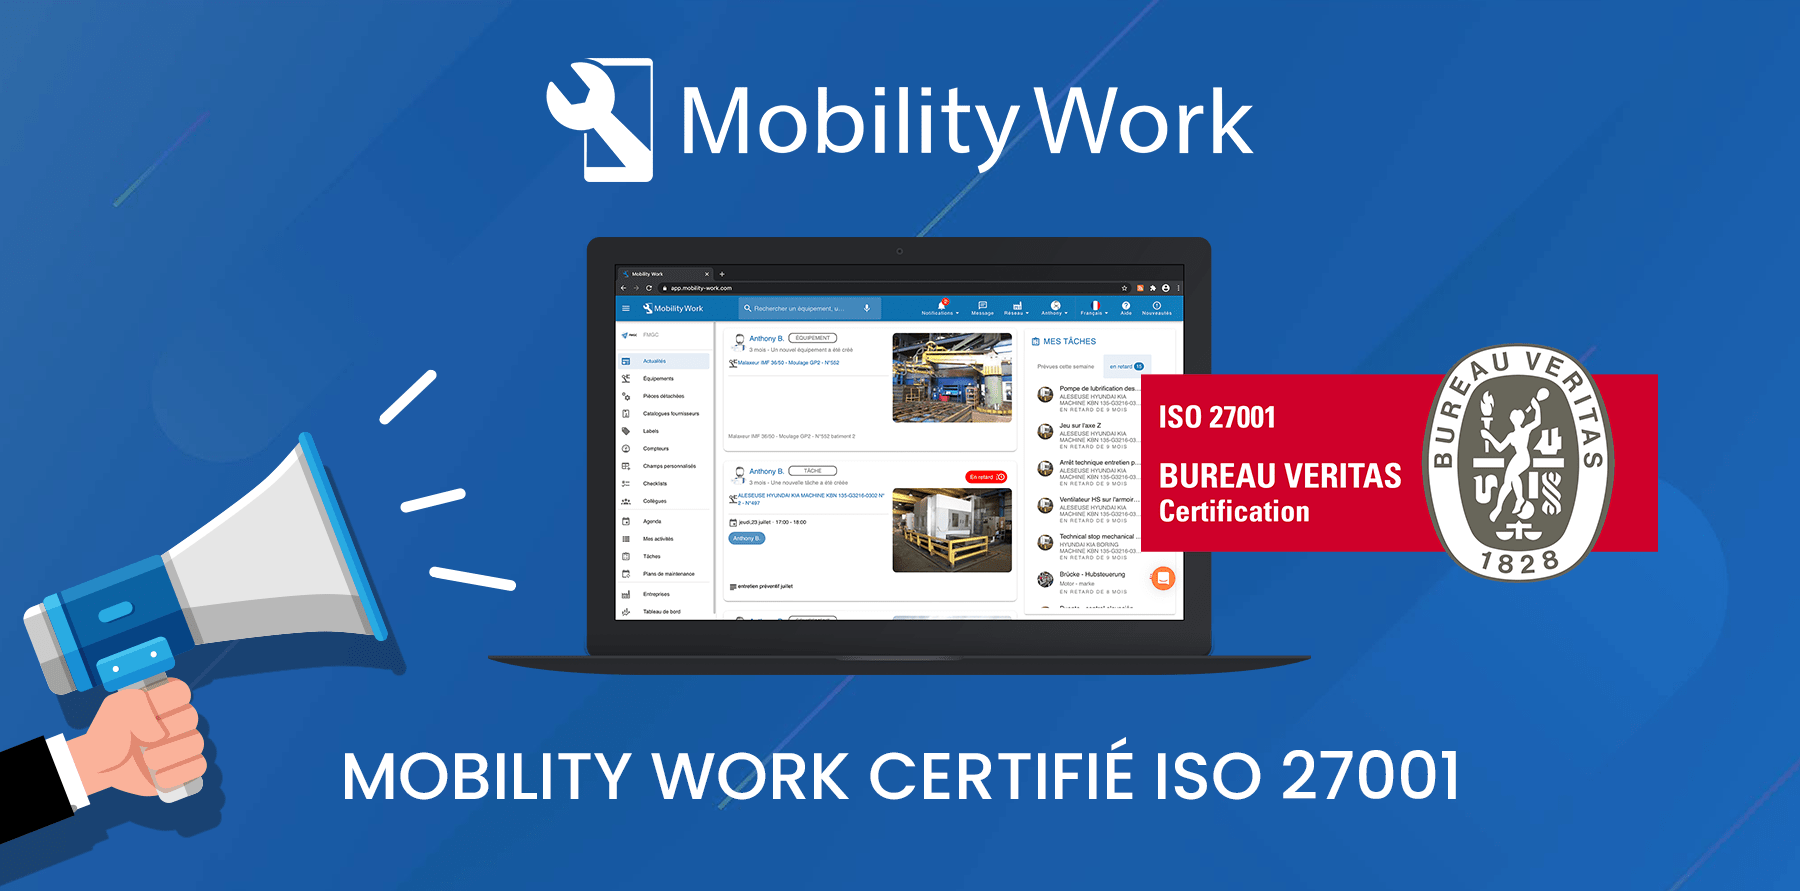 CMMS Mobility Work achieved ISO 27001 certification